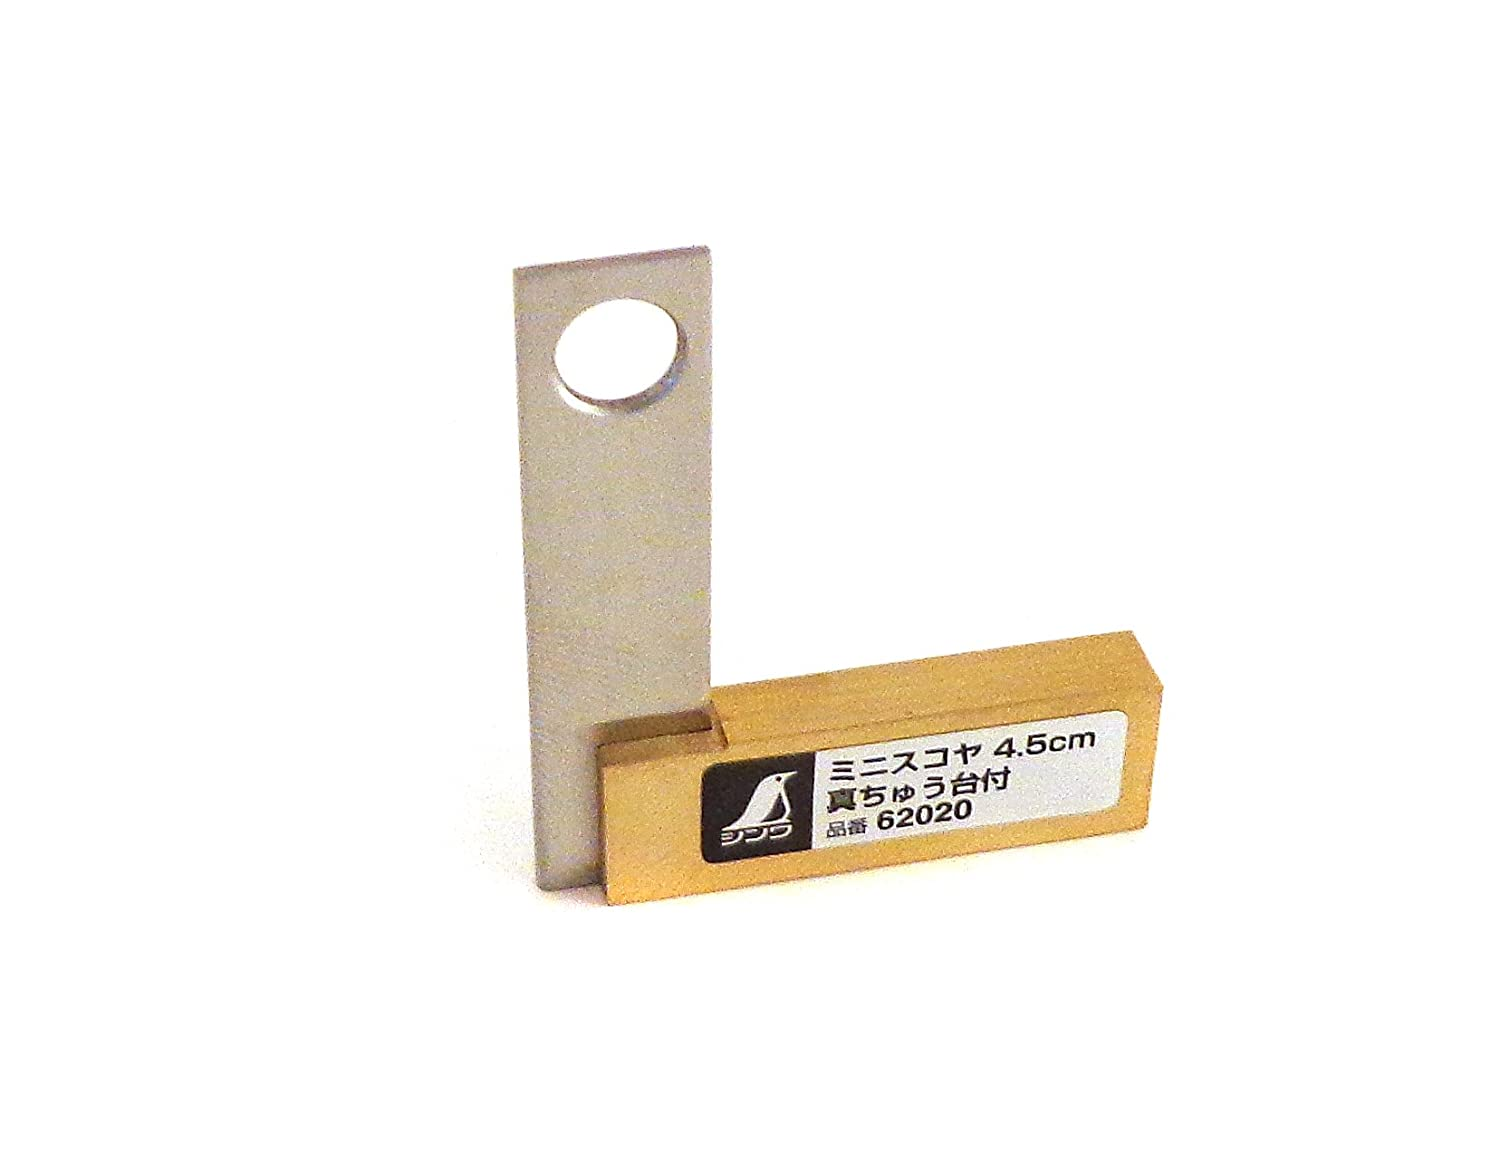 Shinwa 1.75 4.5 cm Solid Brass Stainless Steel Machinist Square 62020